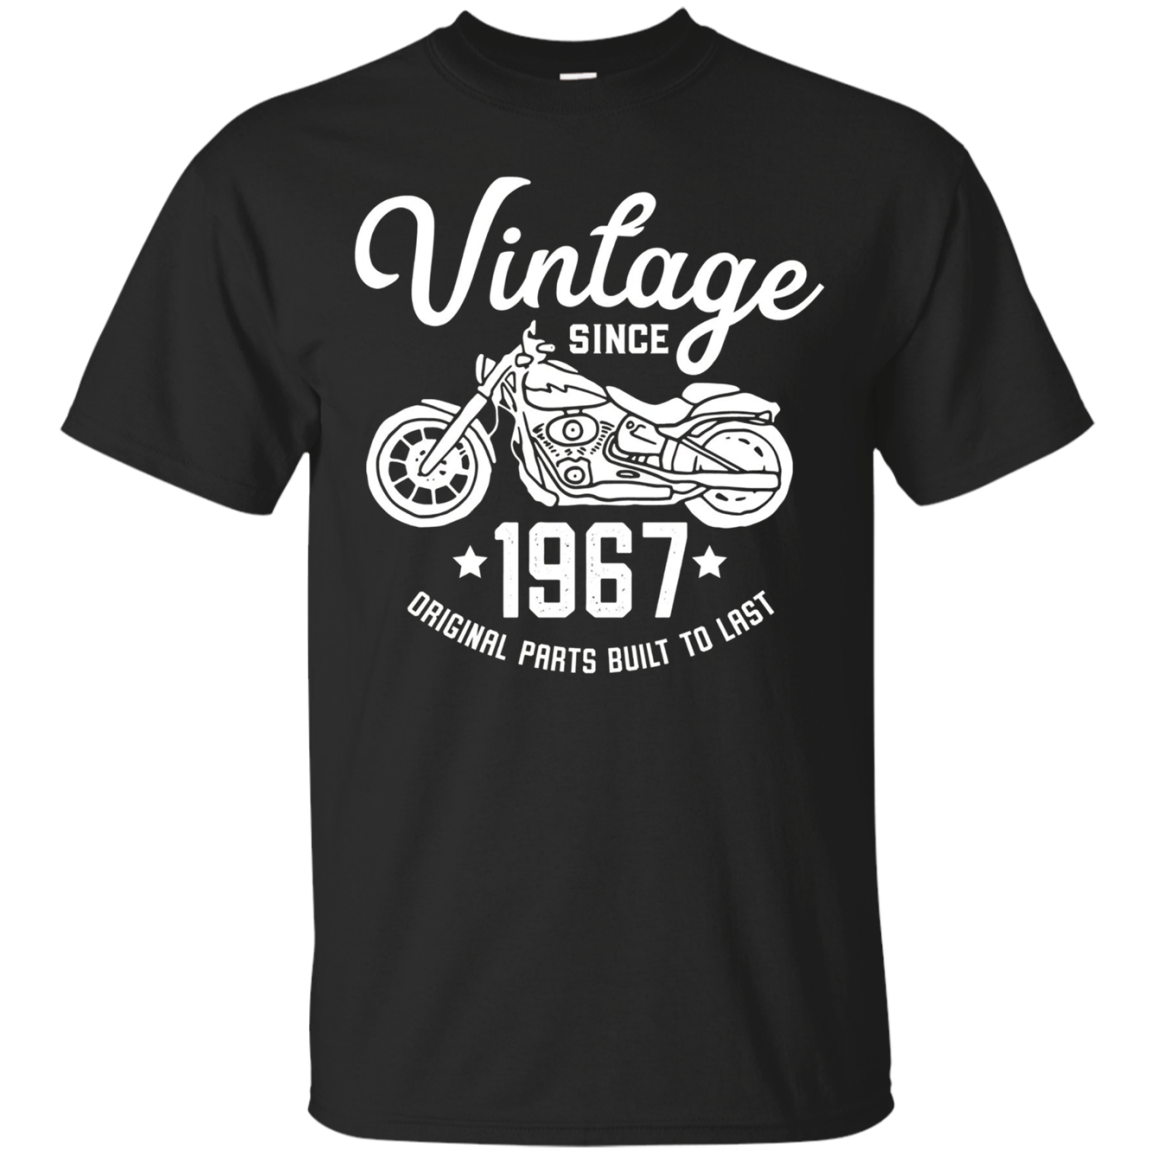 51th Birthday Vintage Retro Motorcycle 1967 Rider T-shirt